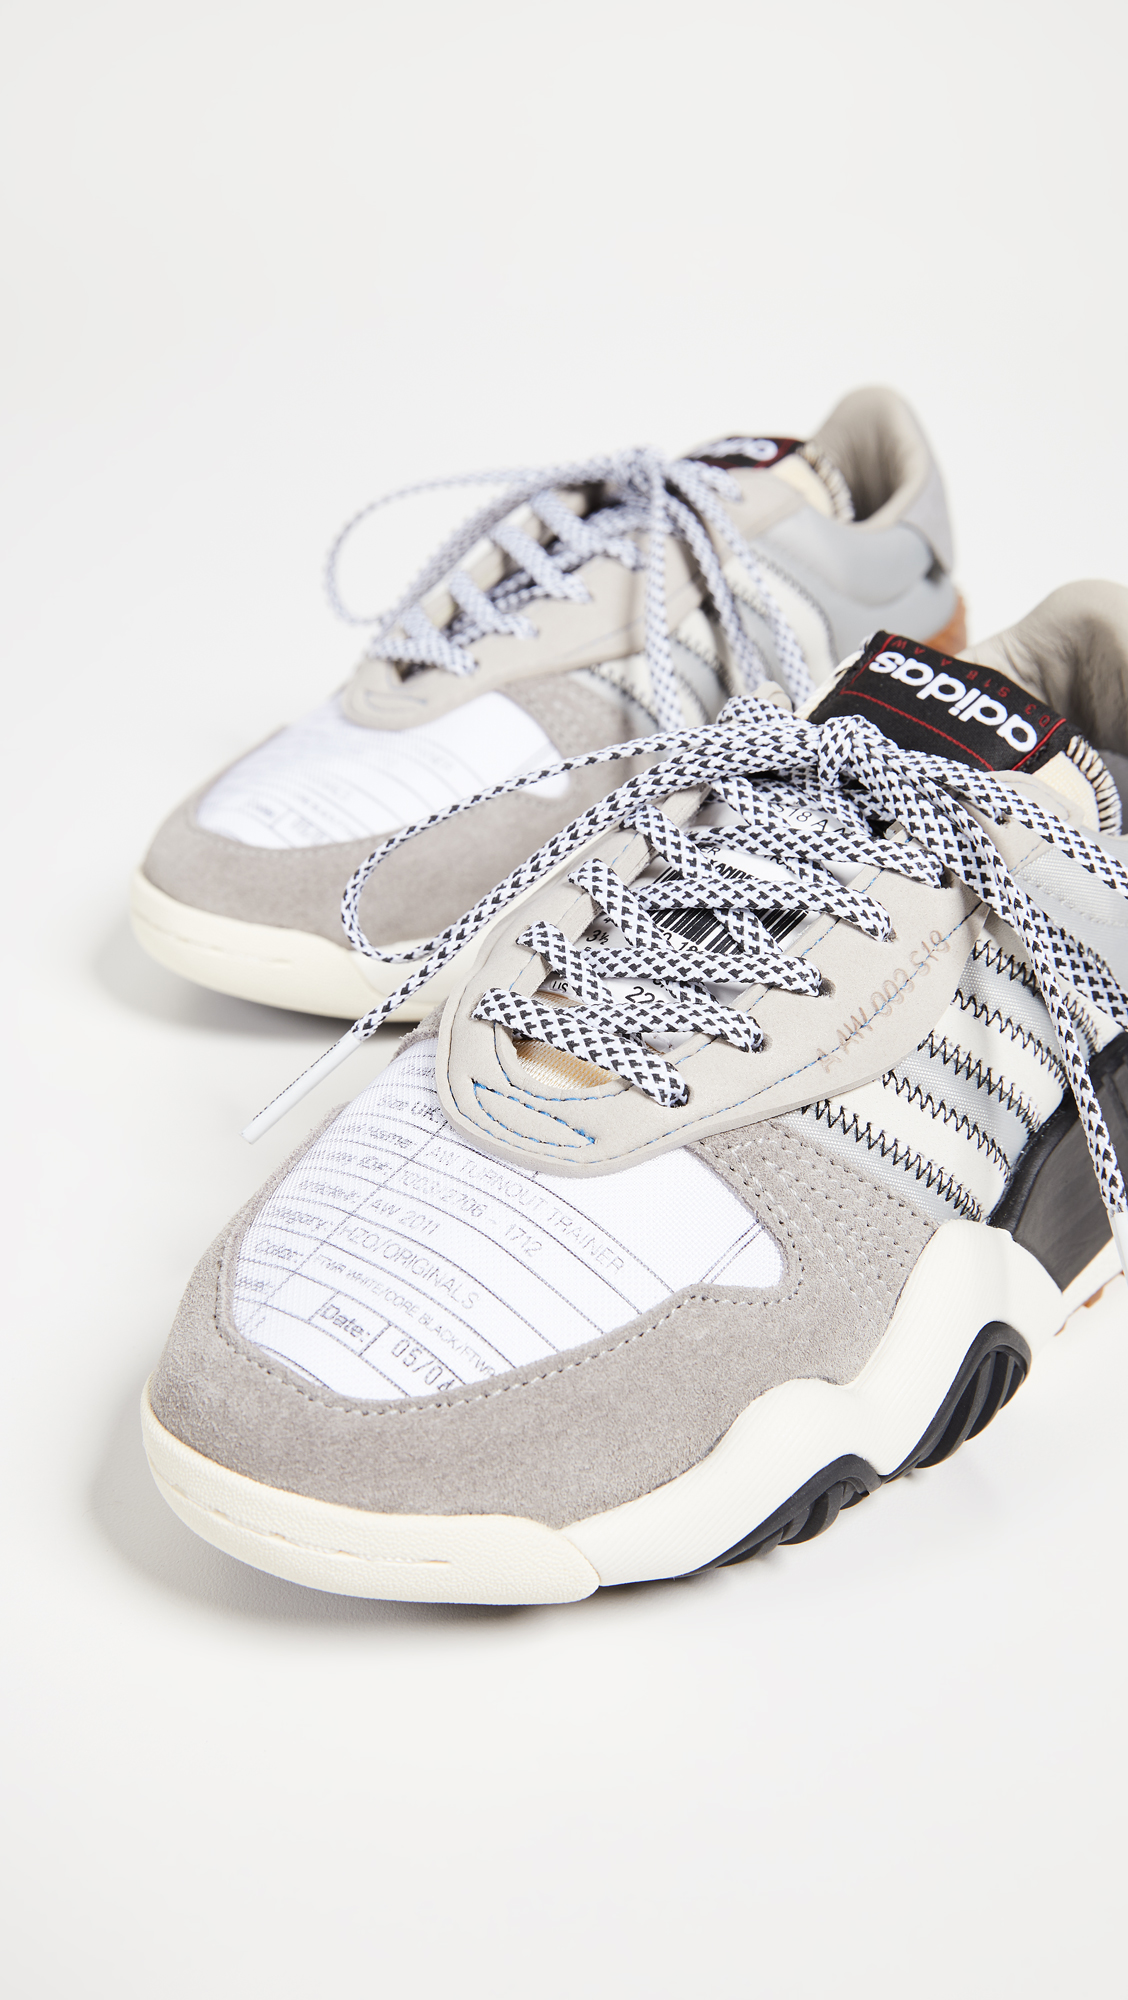 6ba4a19100f21 adidas Originals by Alexander Wang AW Turnout Trainers